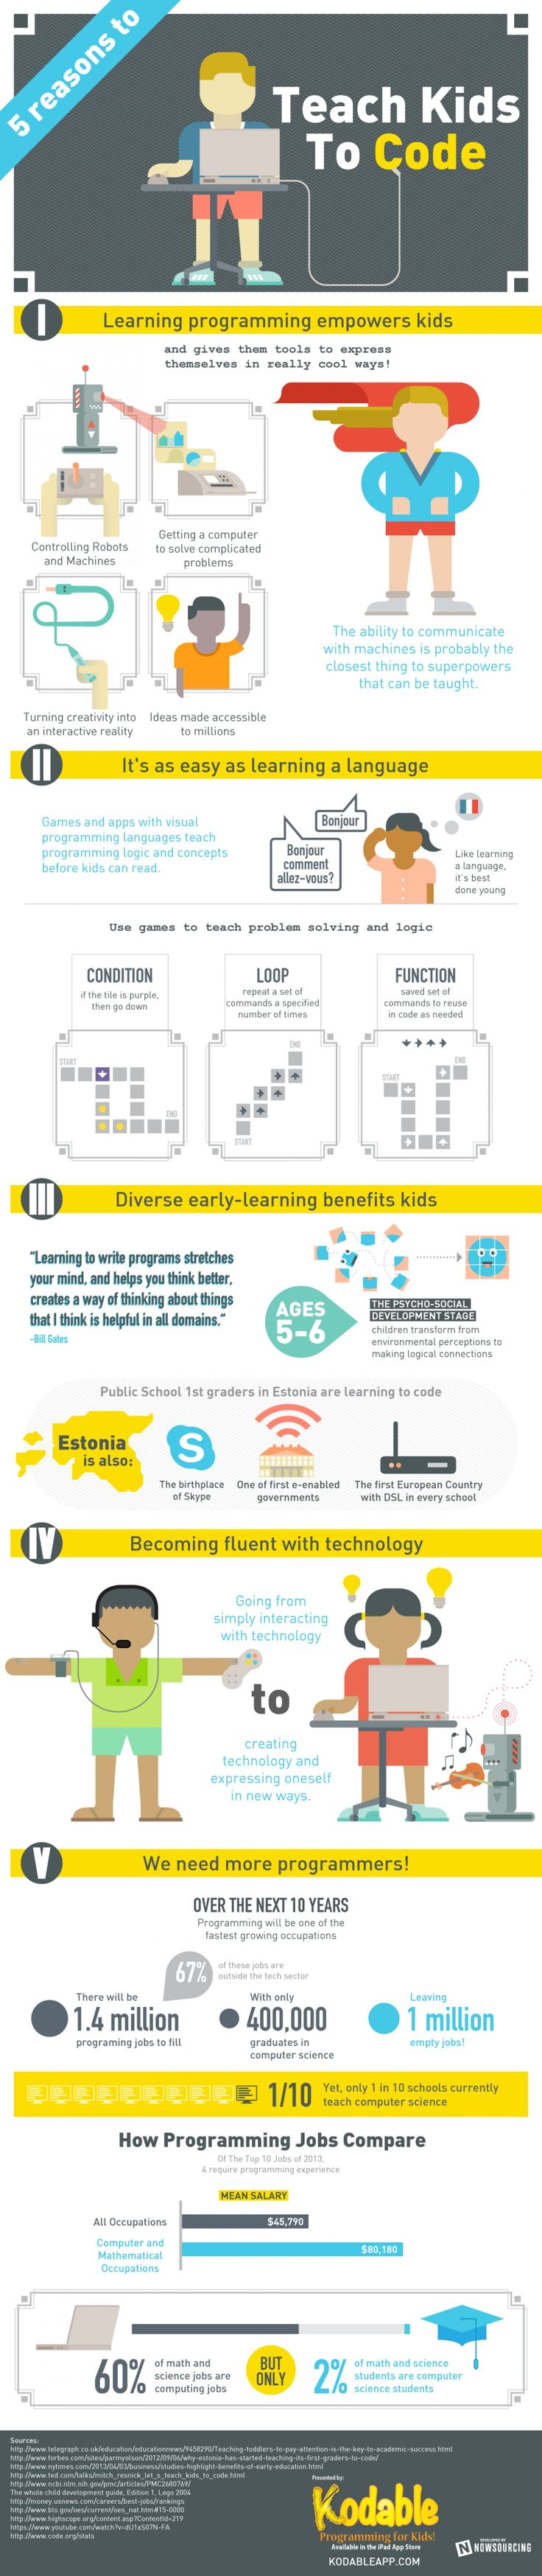 5 Reasons to Teach Kids to Code. #Infographic. Nowadays kids as young as 5 years old are coding and it's amazing!